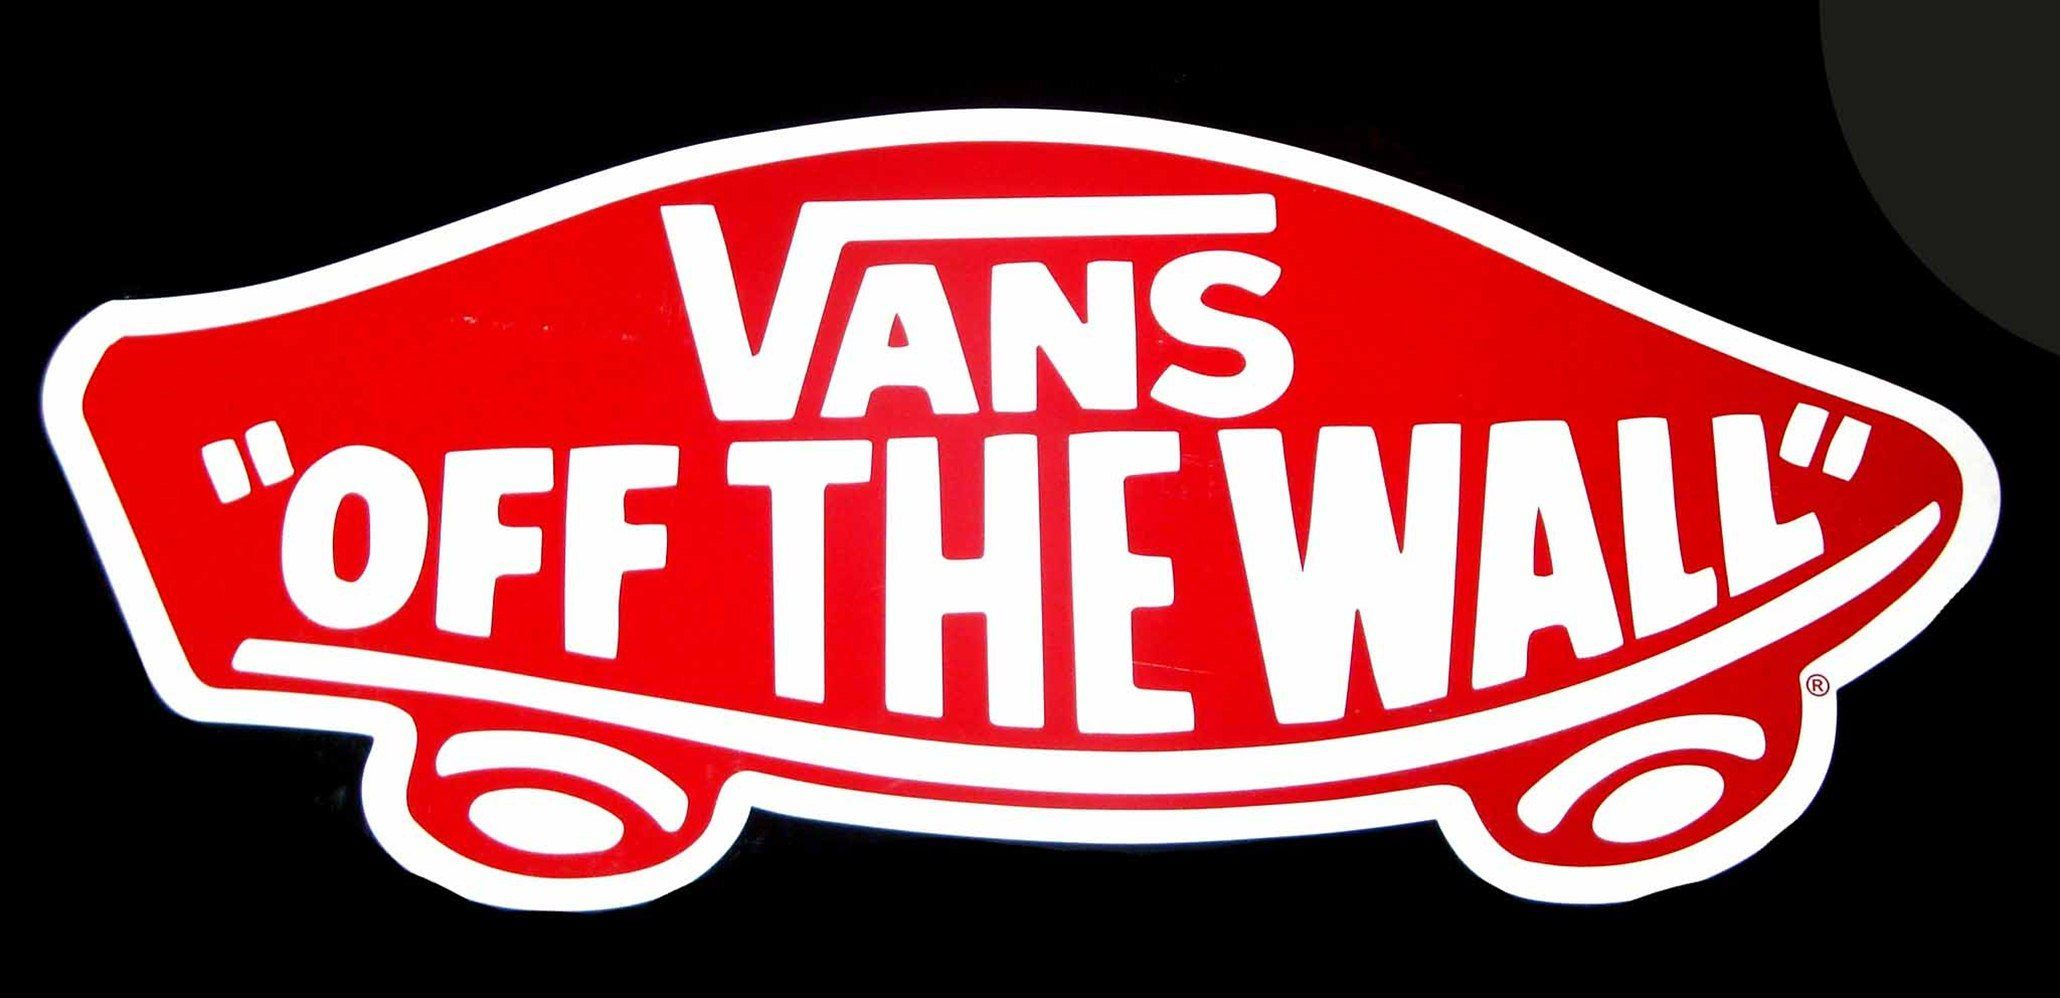 203bce897bd0 Vans Shoes Off The Wall Sticker Wide Approx For Skateboards